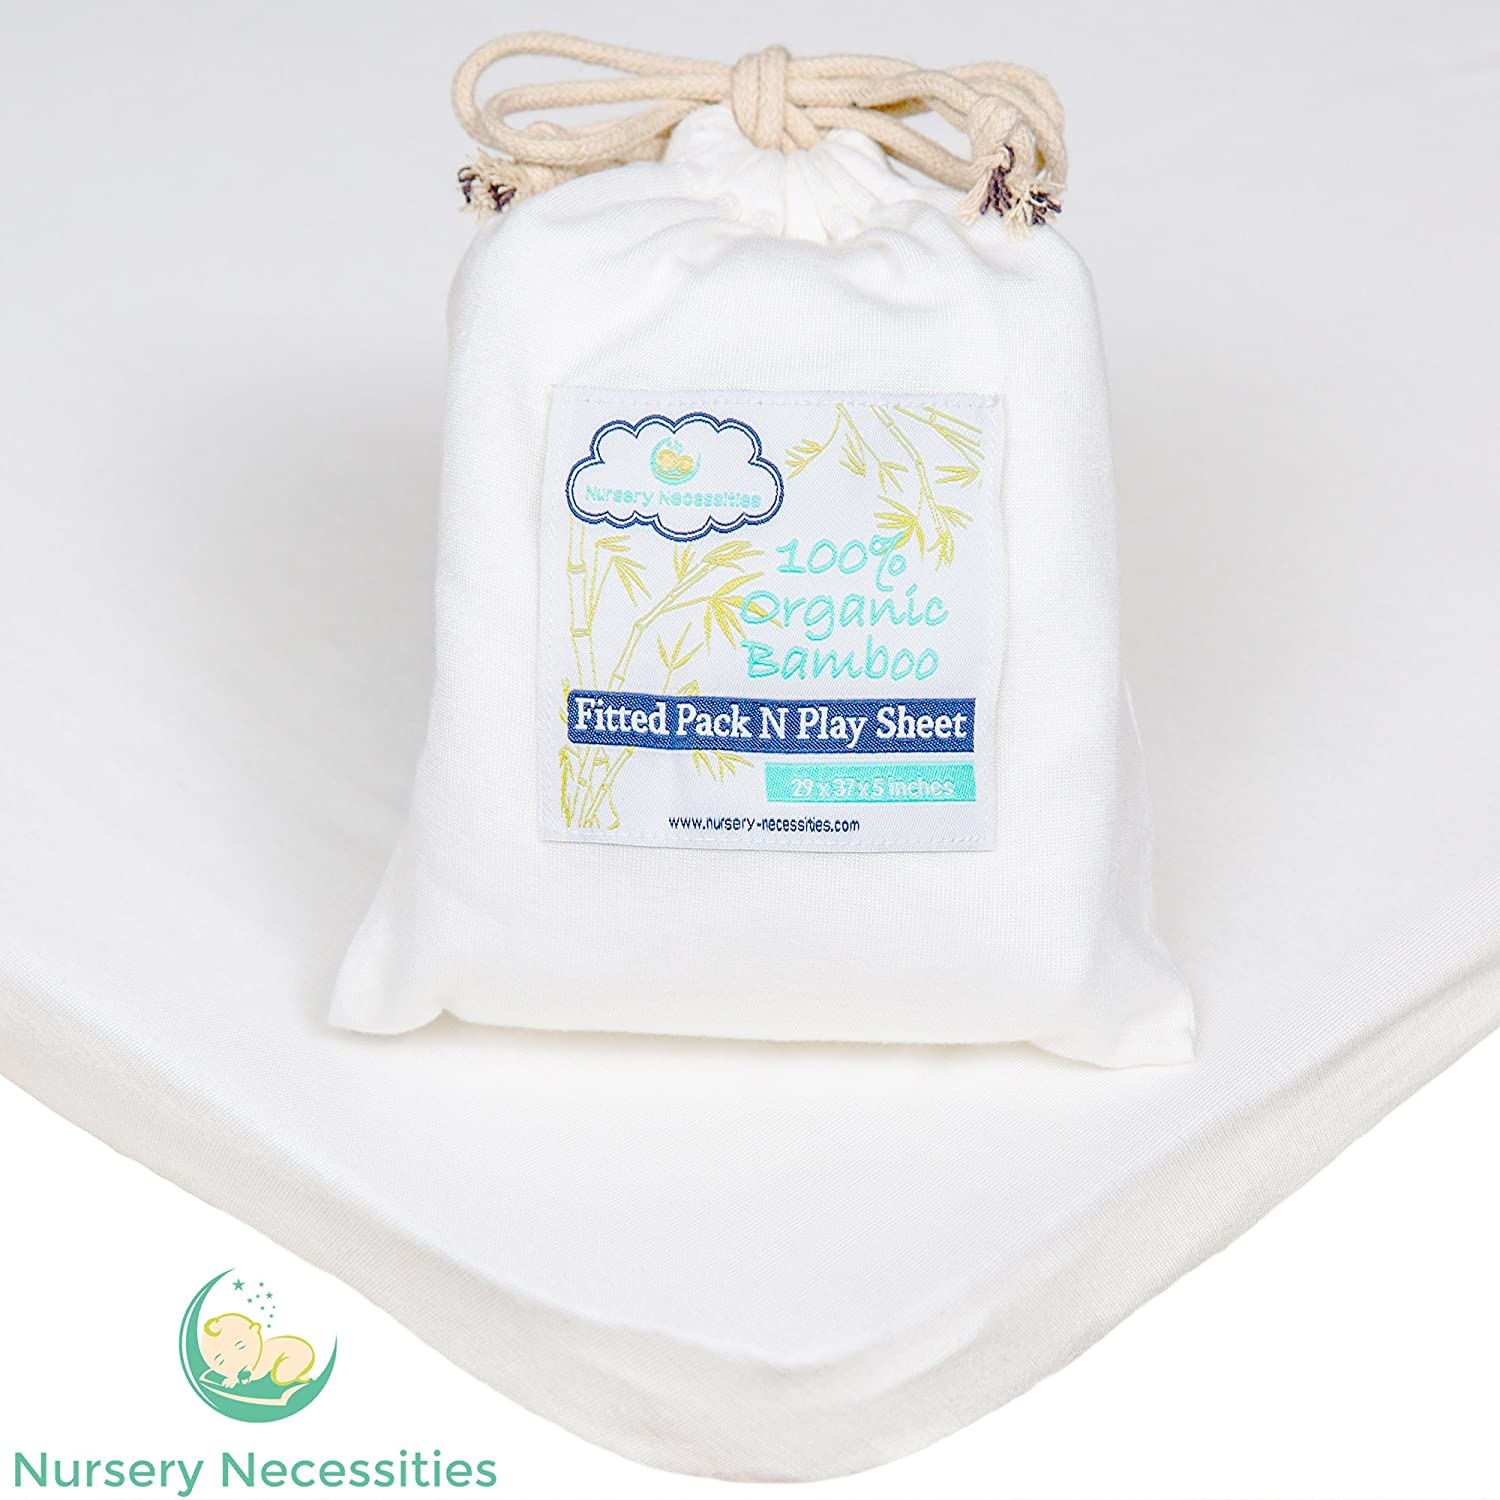 100% Organic Bamboo Pack N Play Sheet - Silky Soft, Antibacterial, Hypoallergenic - Superior to Cotton - by Nursery Necessities 819FI4faOiL